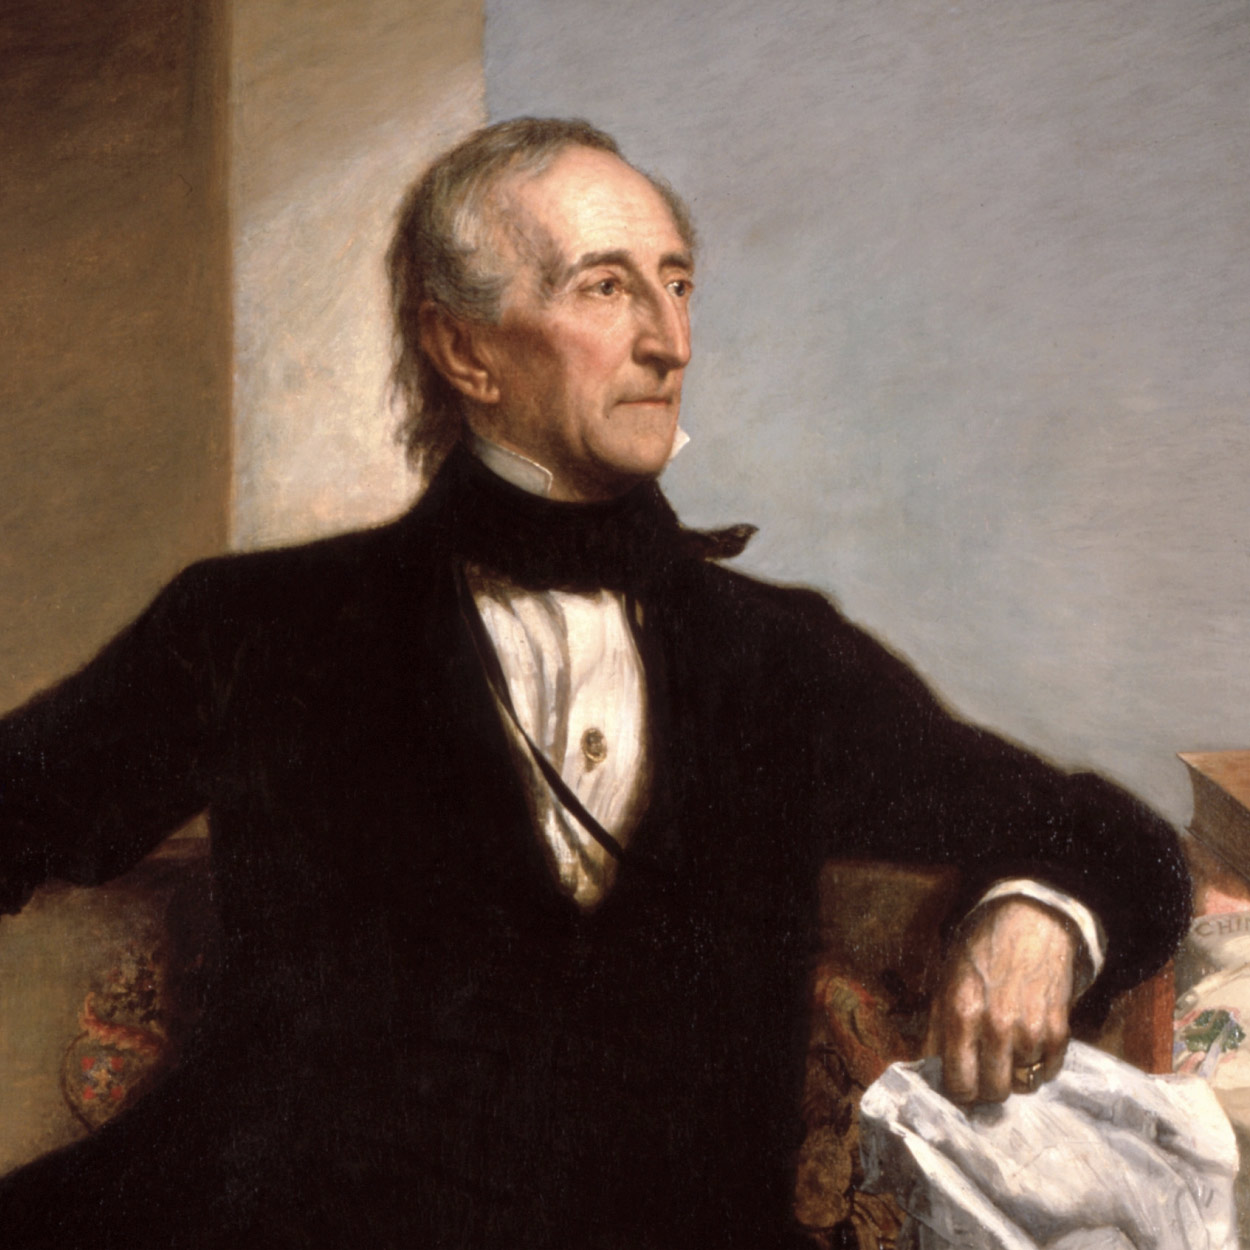 Portrait of John Tyler, the 10th President of the United States